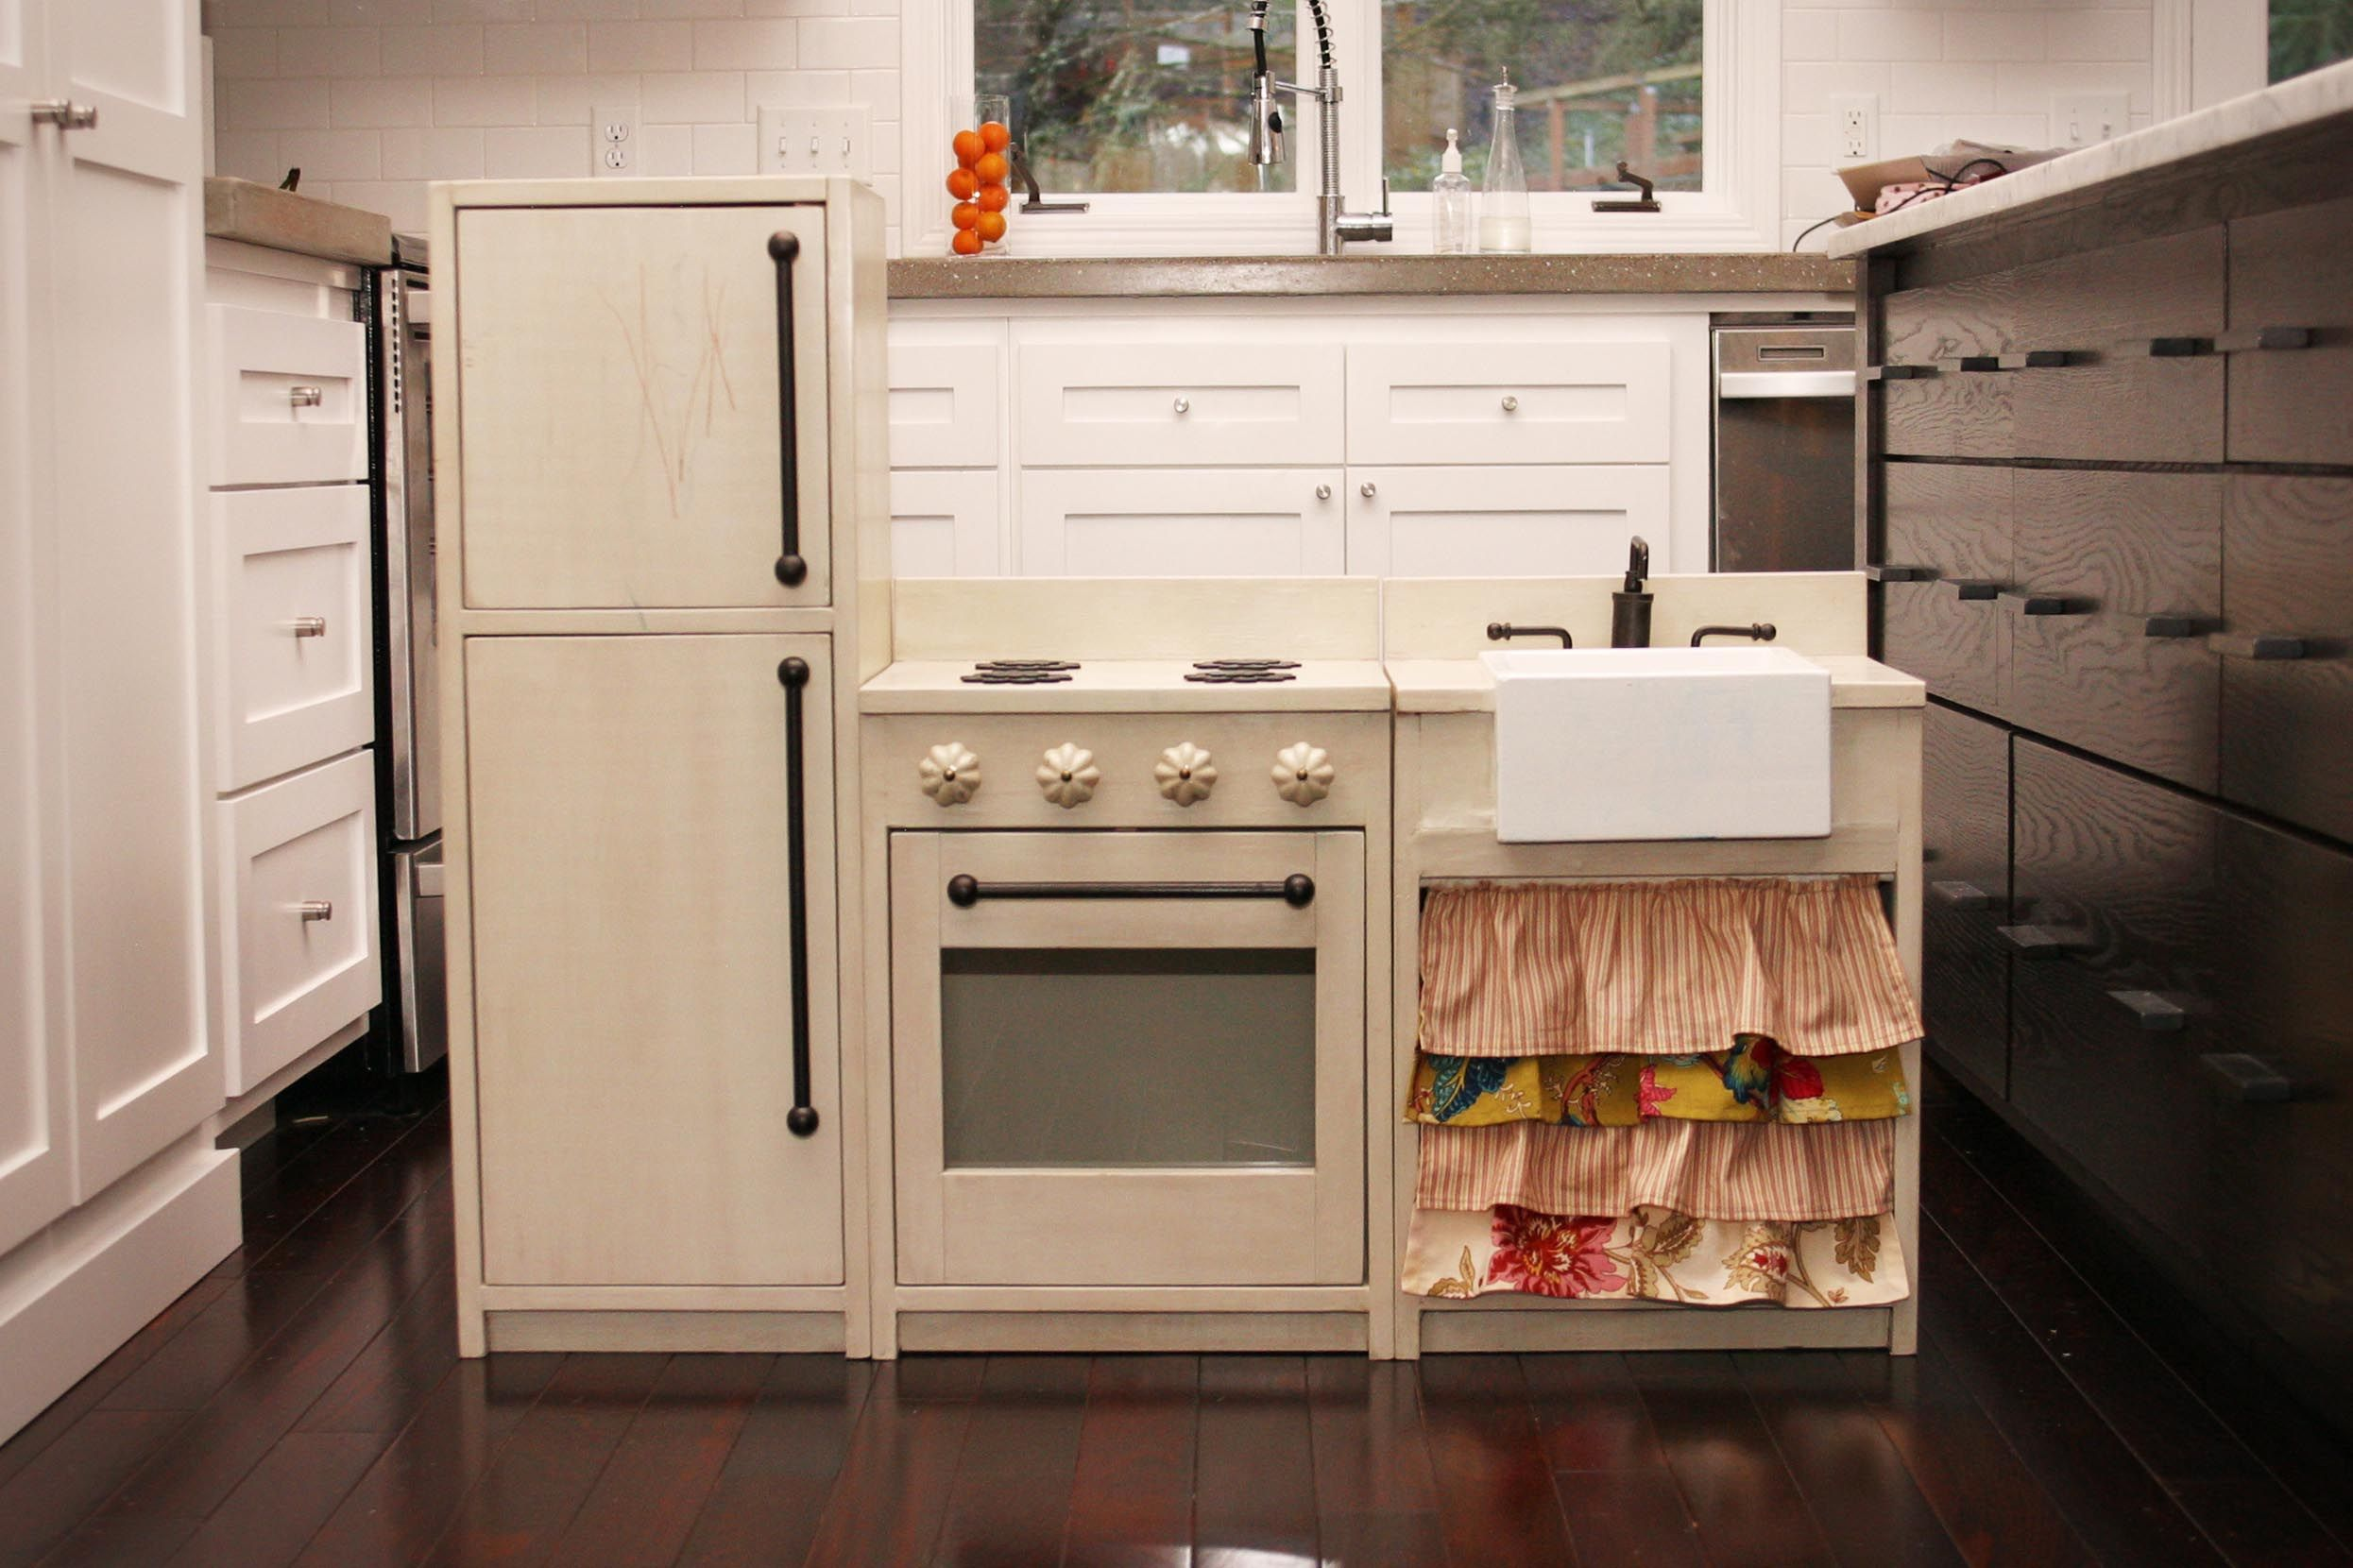 Kate's Play Kitchen Do It Yourself Home Projects from